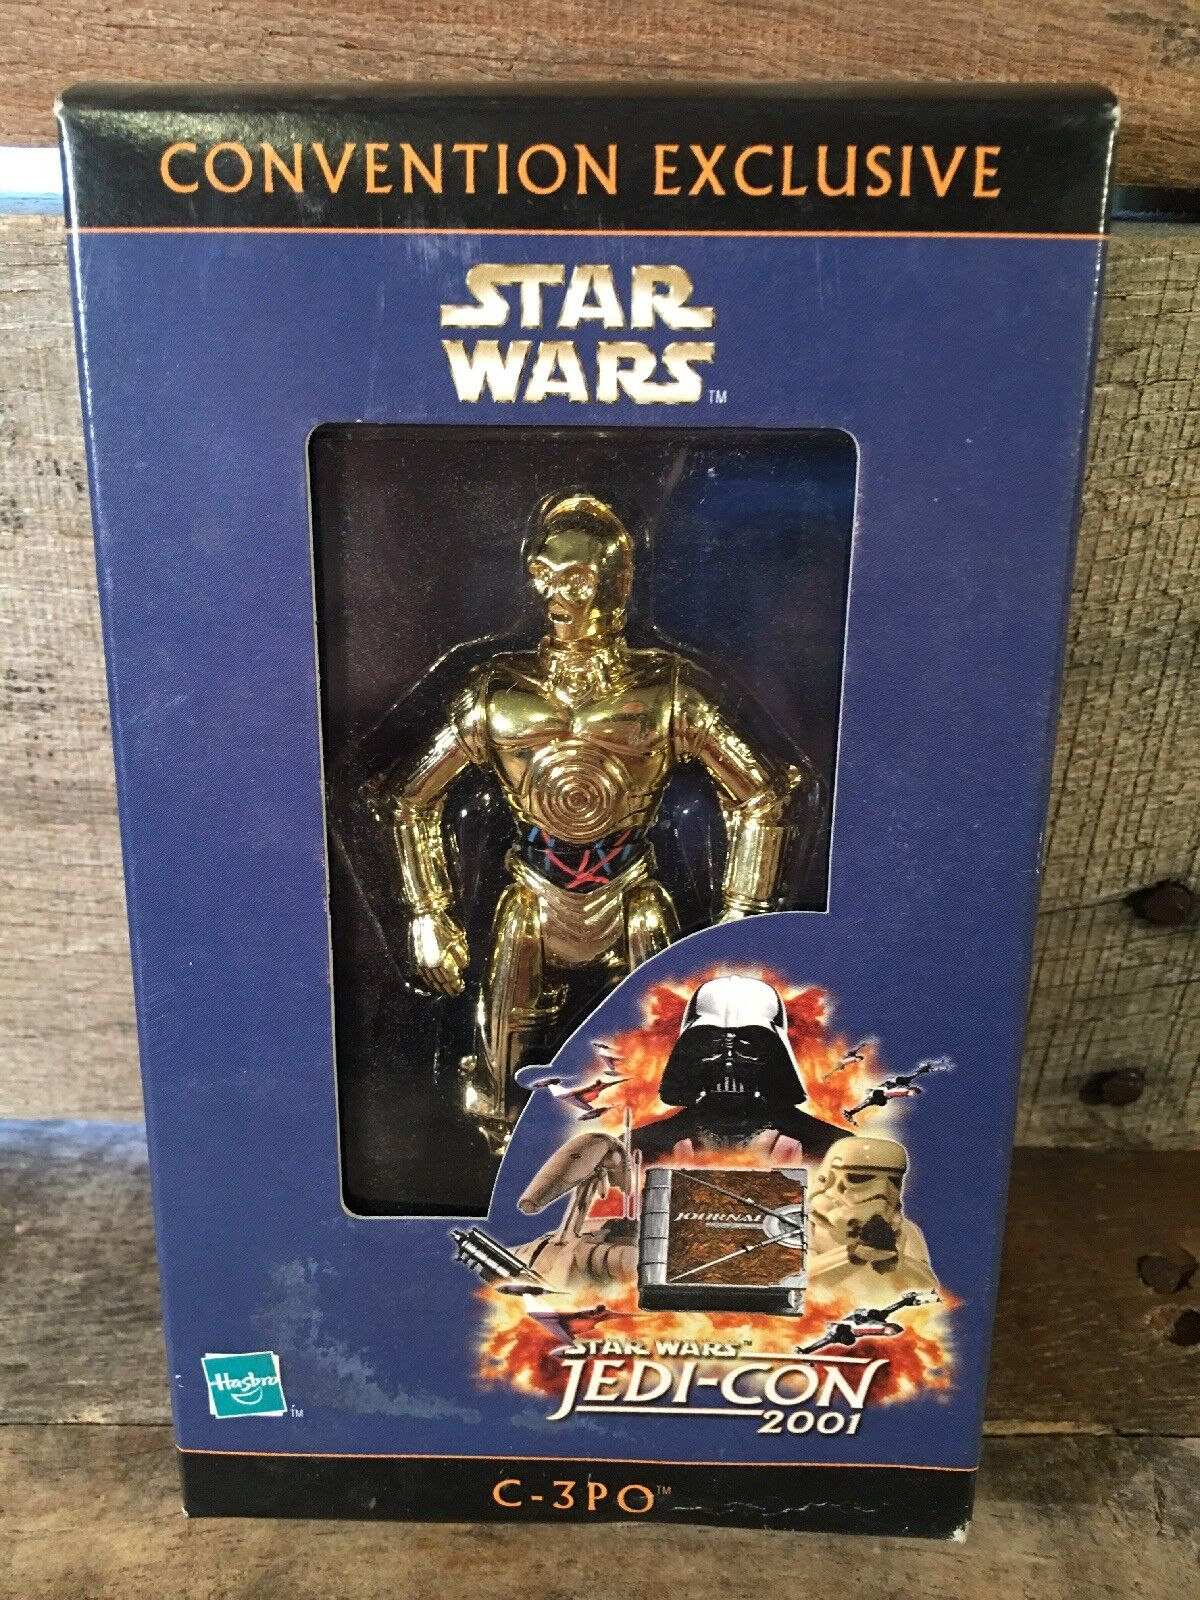 Star Wars C-3PO Jedi-Con 2001 Toy Action Figure Hasbro NEW Convention Exclusive